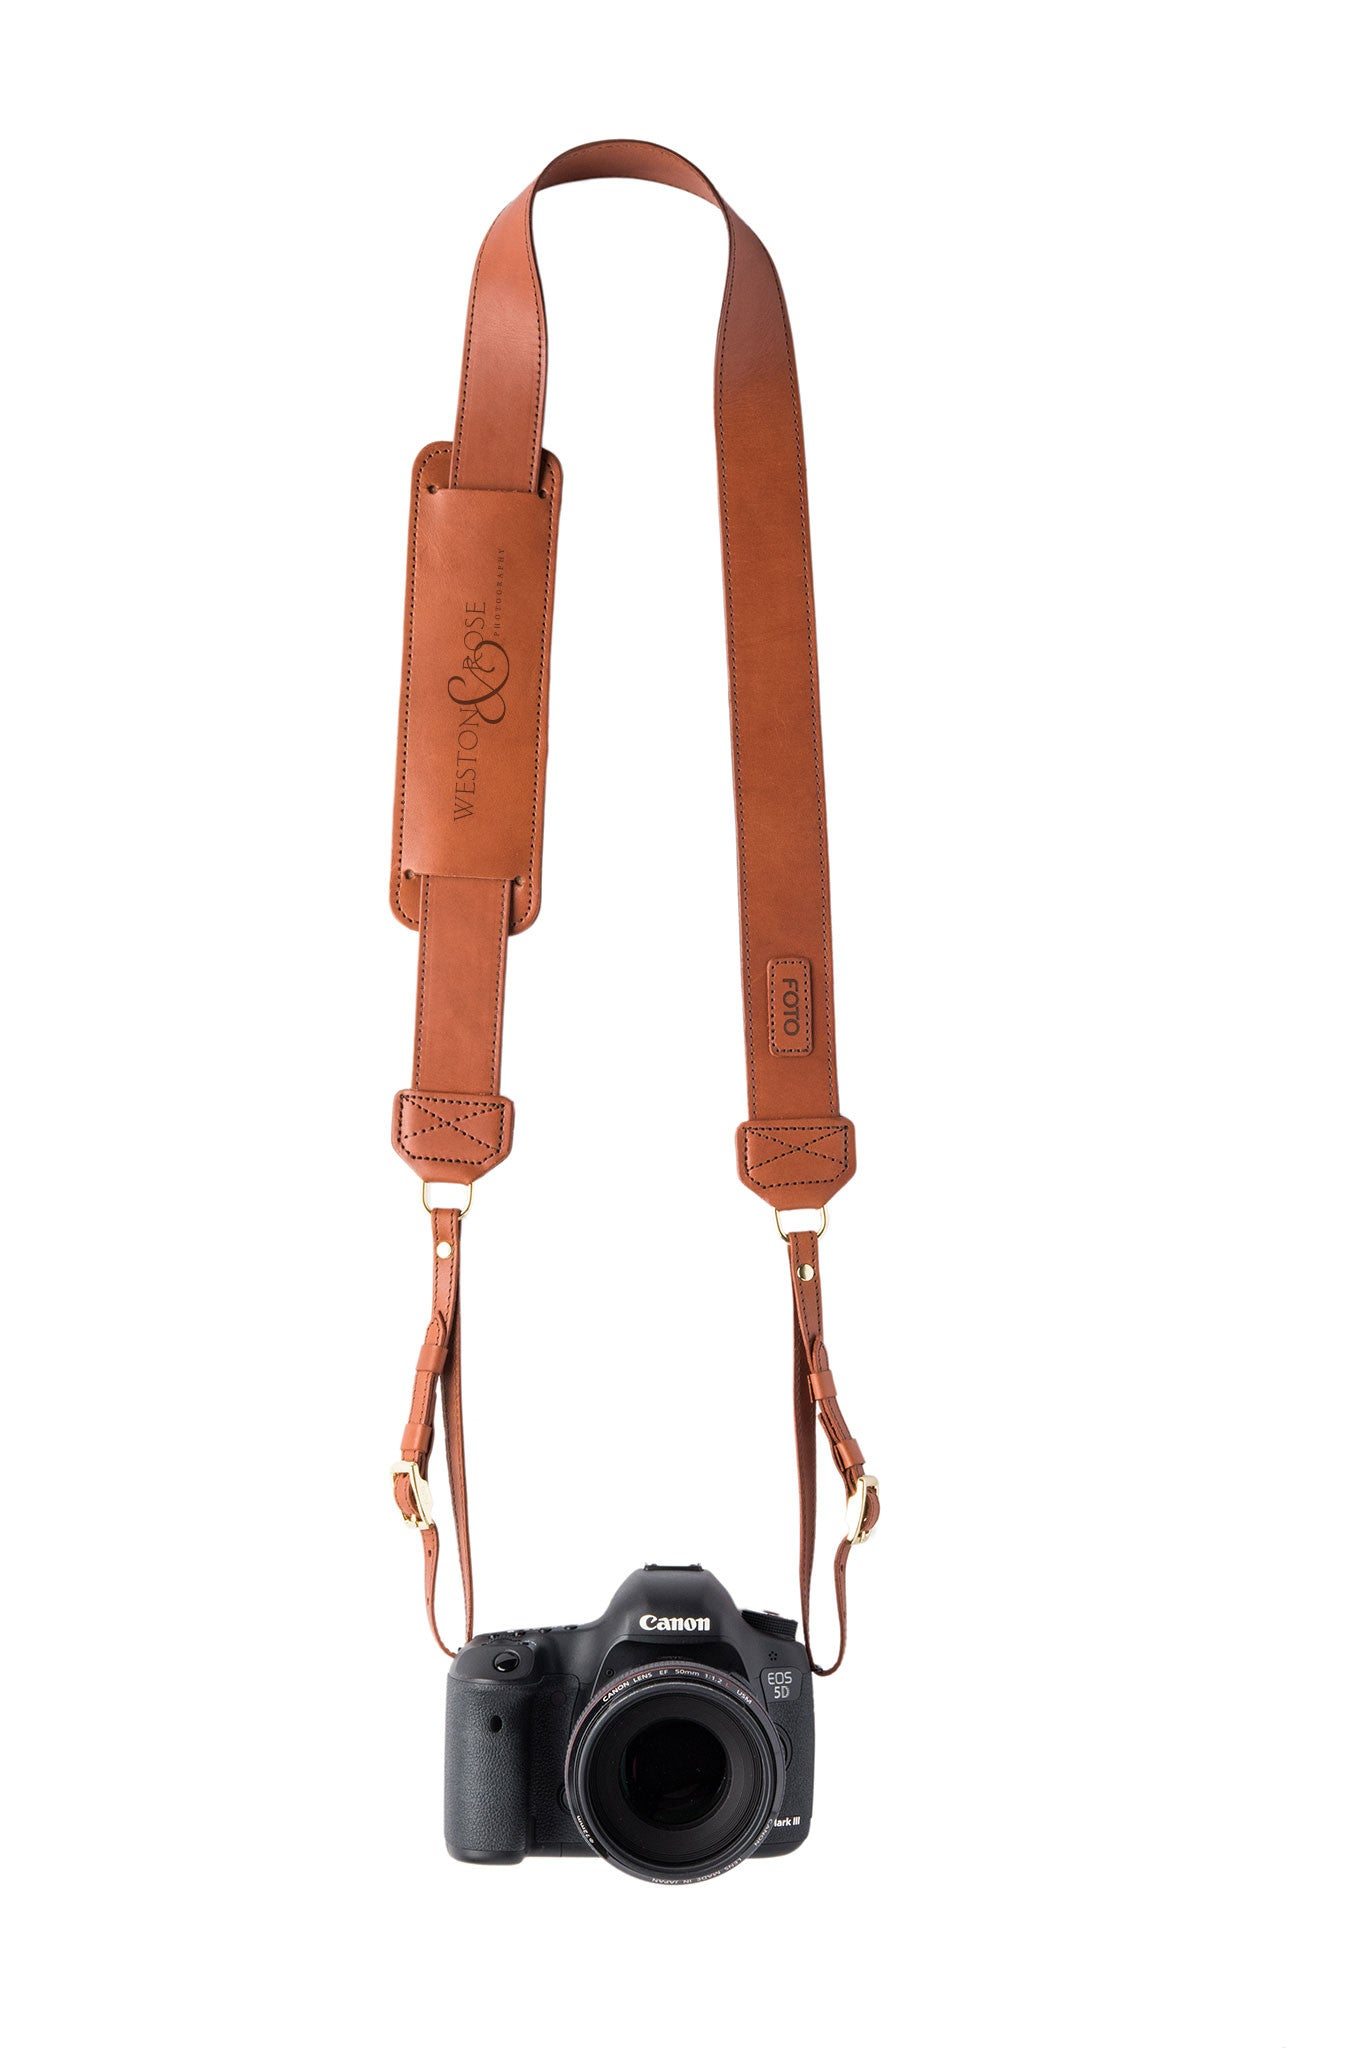 FOTO | James Fotostrap - a chestnut brown genuine all-leather camera strap that can be personalized with a monogram or business logo, making this leather camera strap the perfect personalized gift.